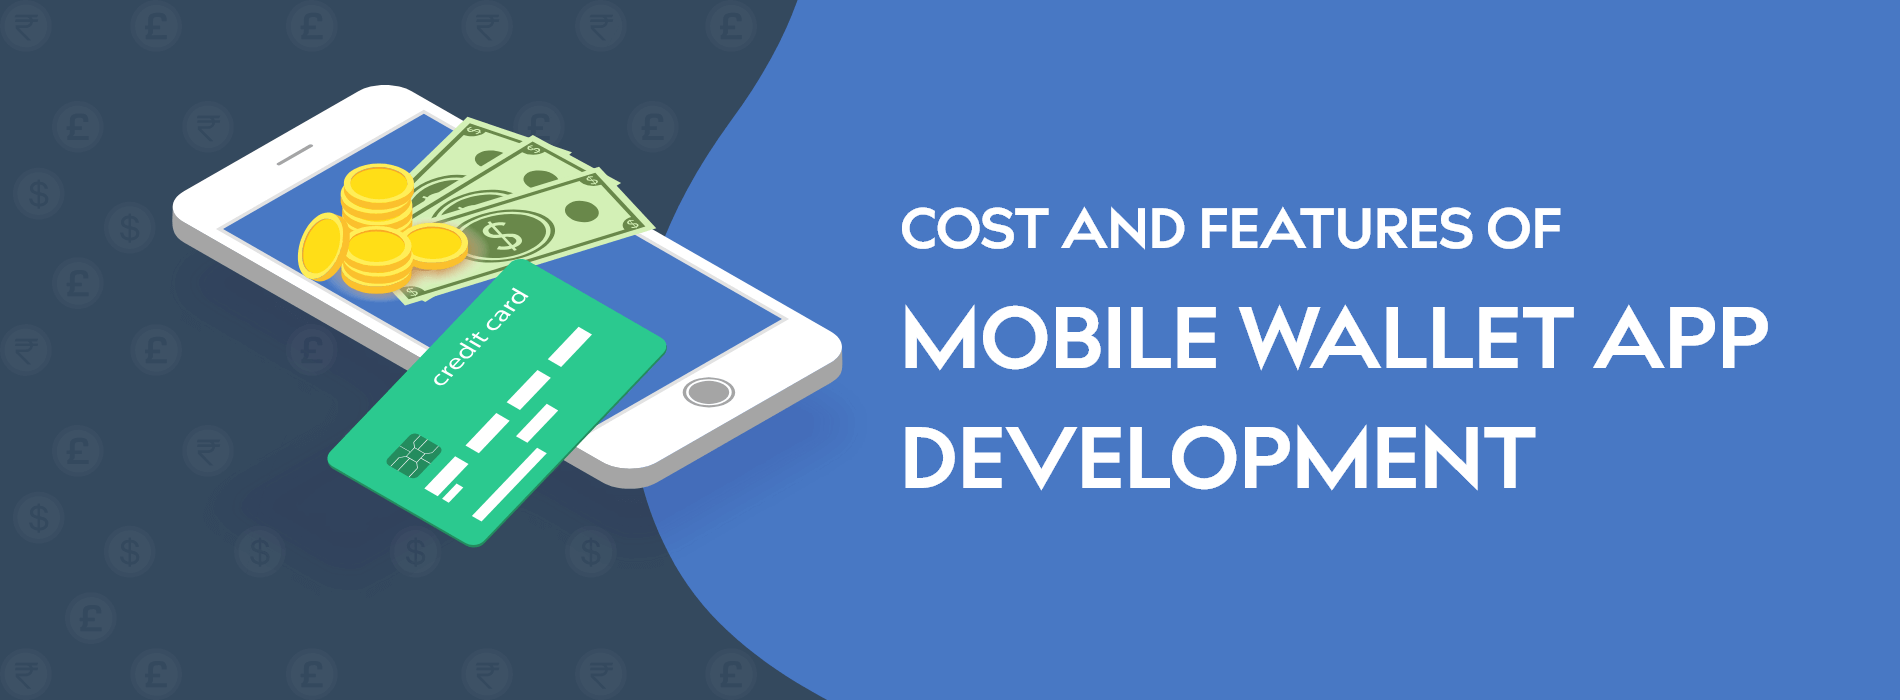 Cost and Features of Mobile Wallet App Development